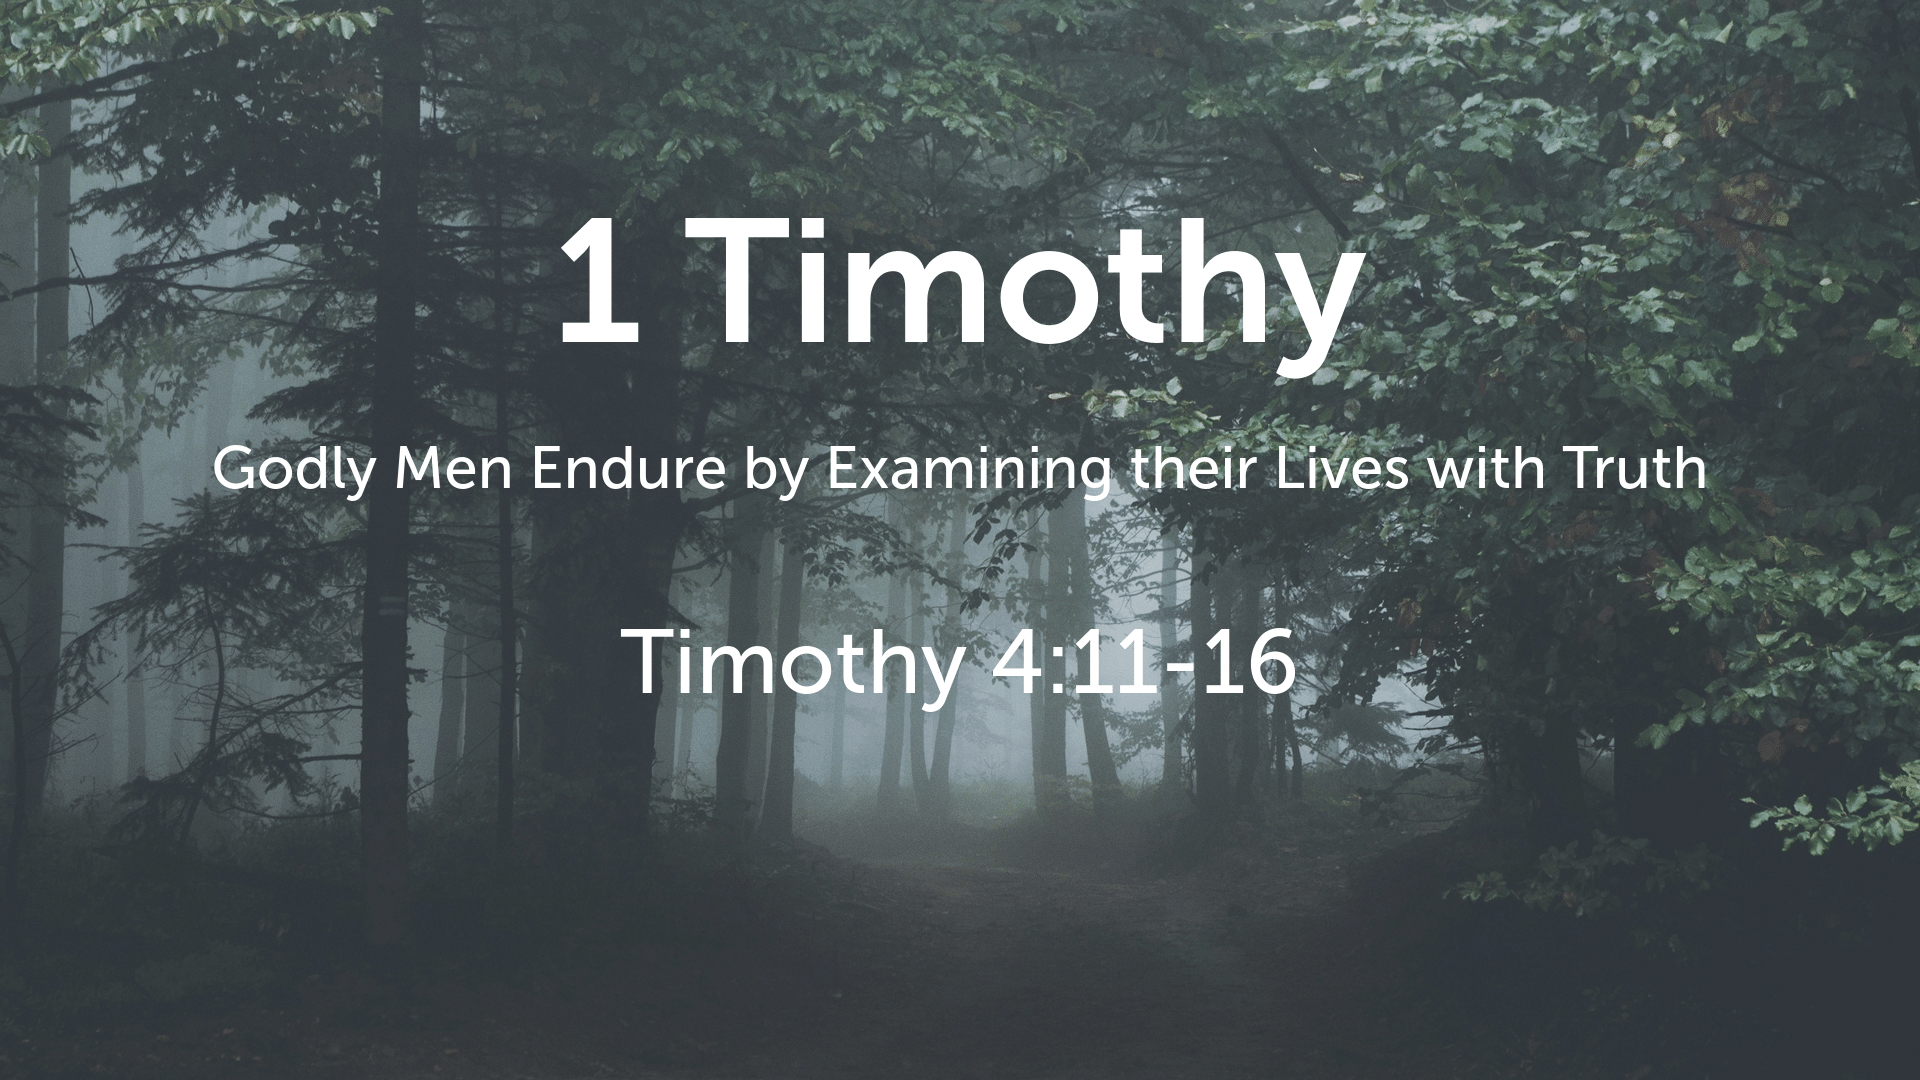 1 Timothy 4:11-16 Questions